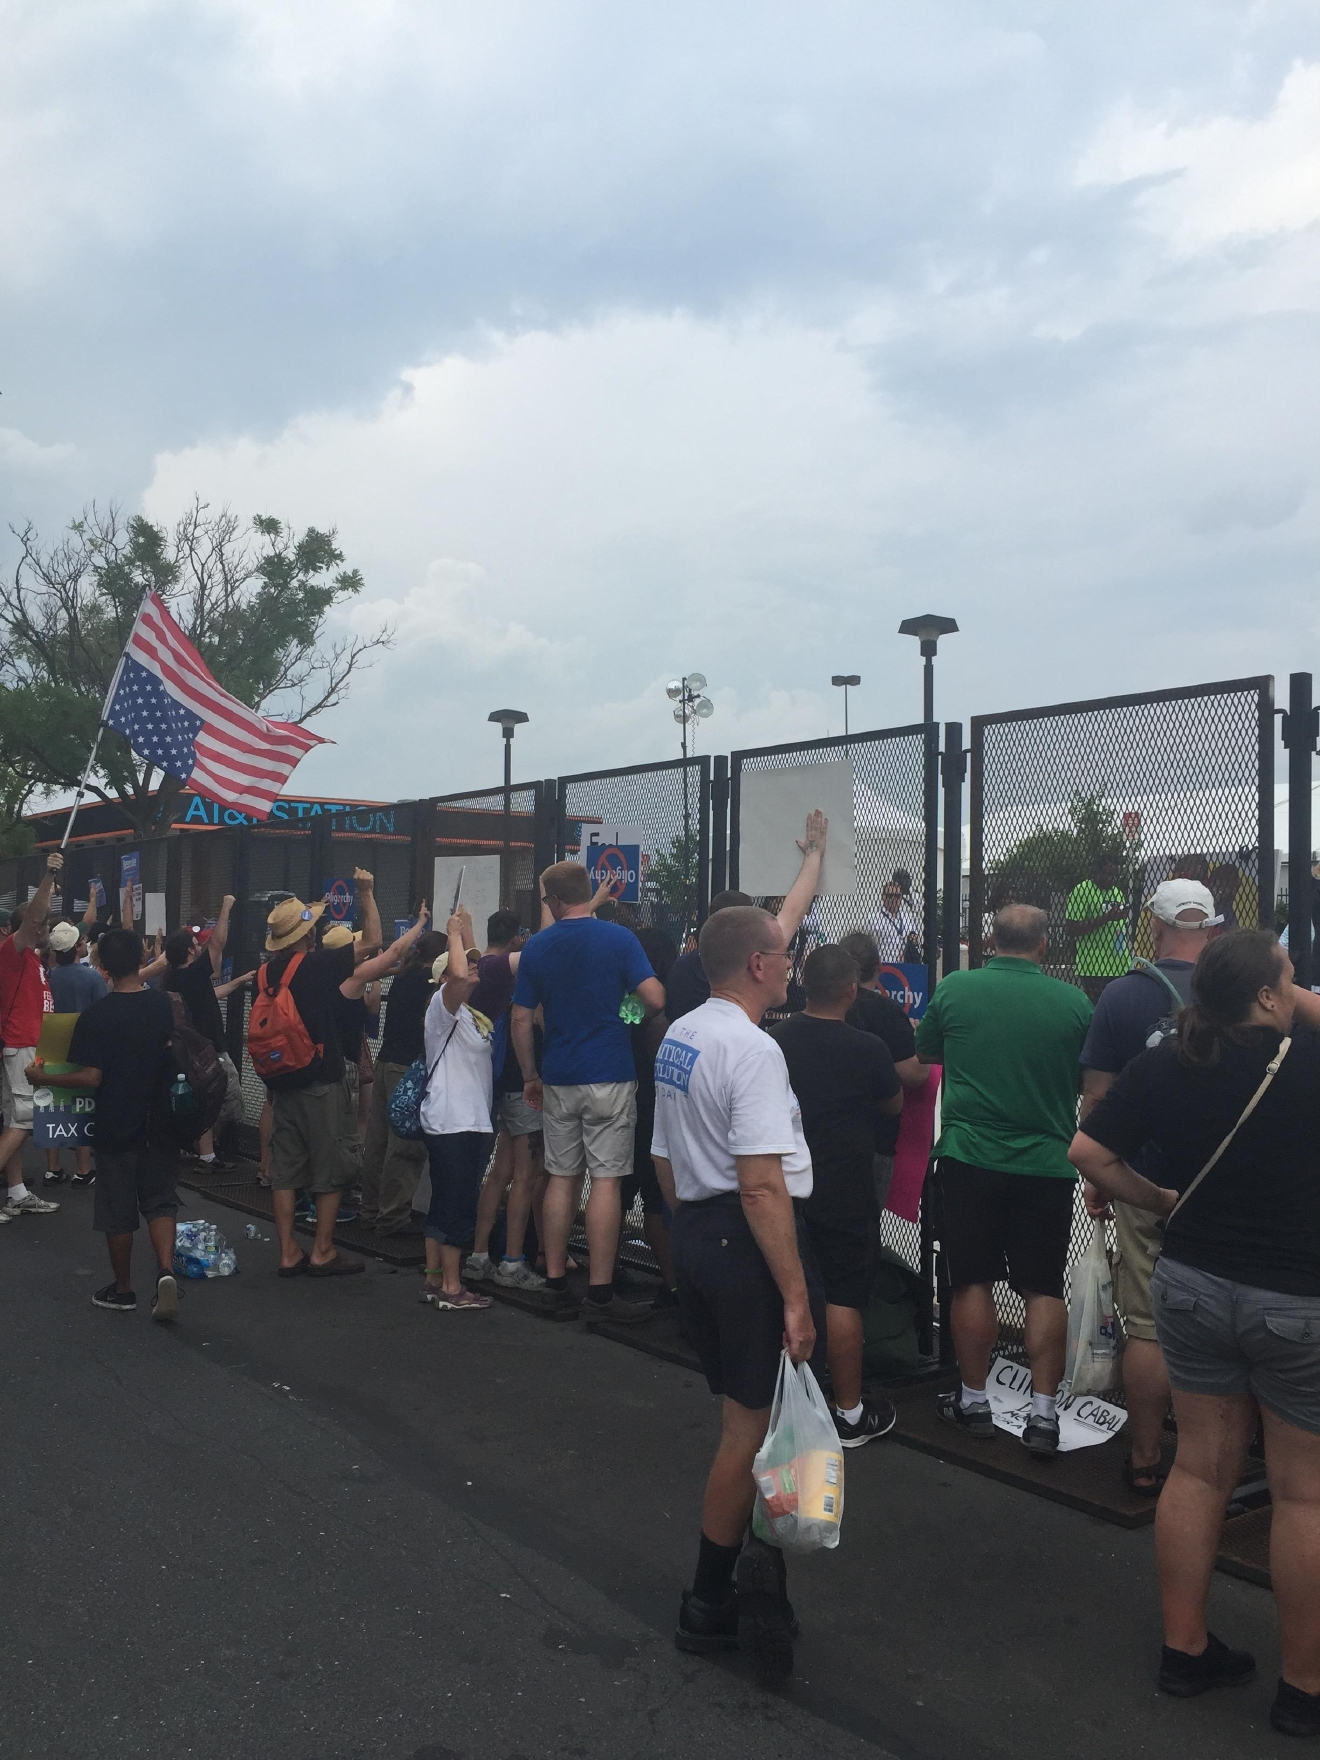 Protesters line the perimeter outside of the Democratic National Convention. (Amanda Ota, Sinclair Broadcast Group)